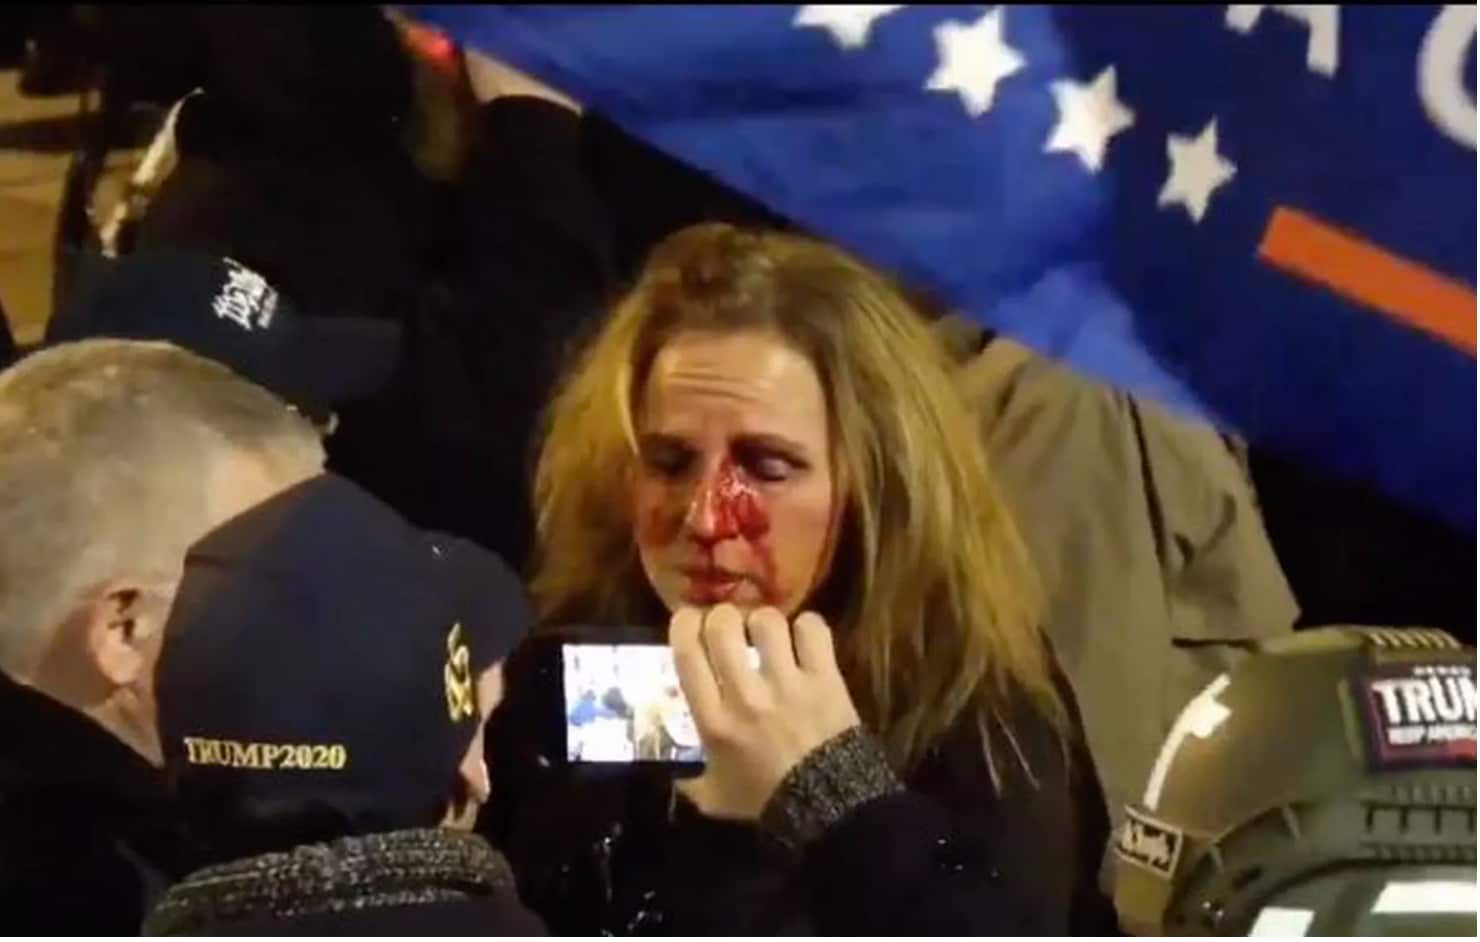 MAGA protester punched by Black security guard, exposed by daughter, arrested